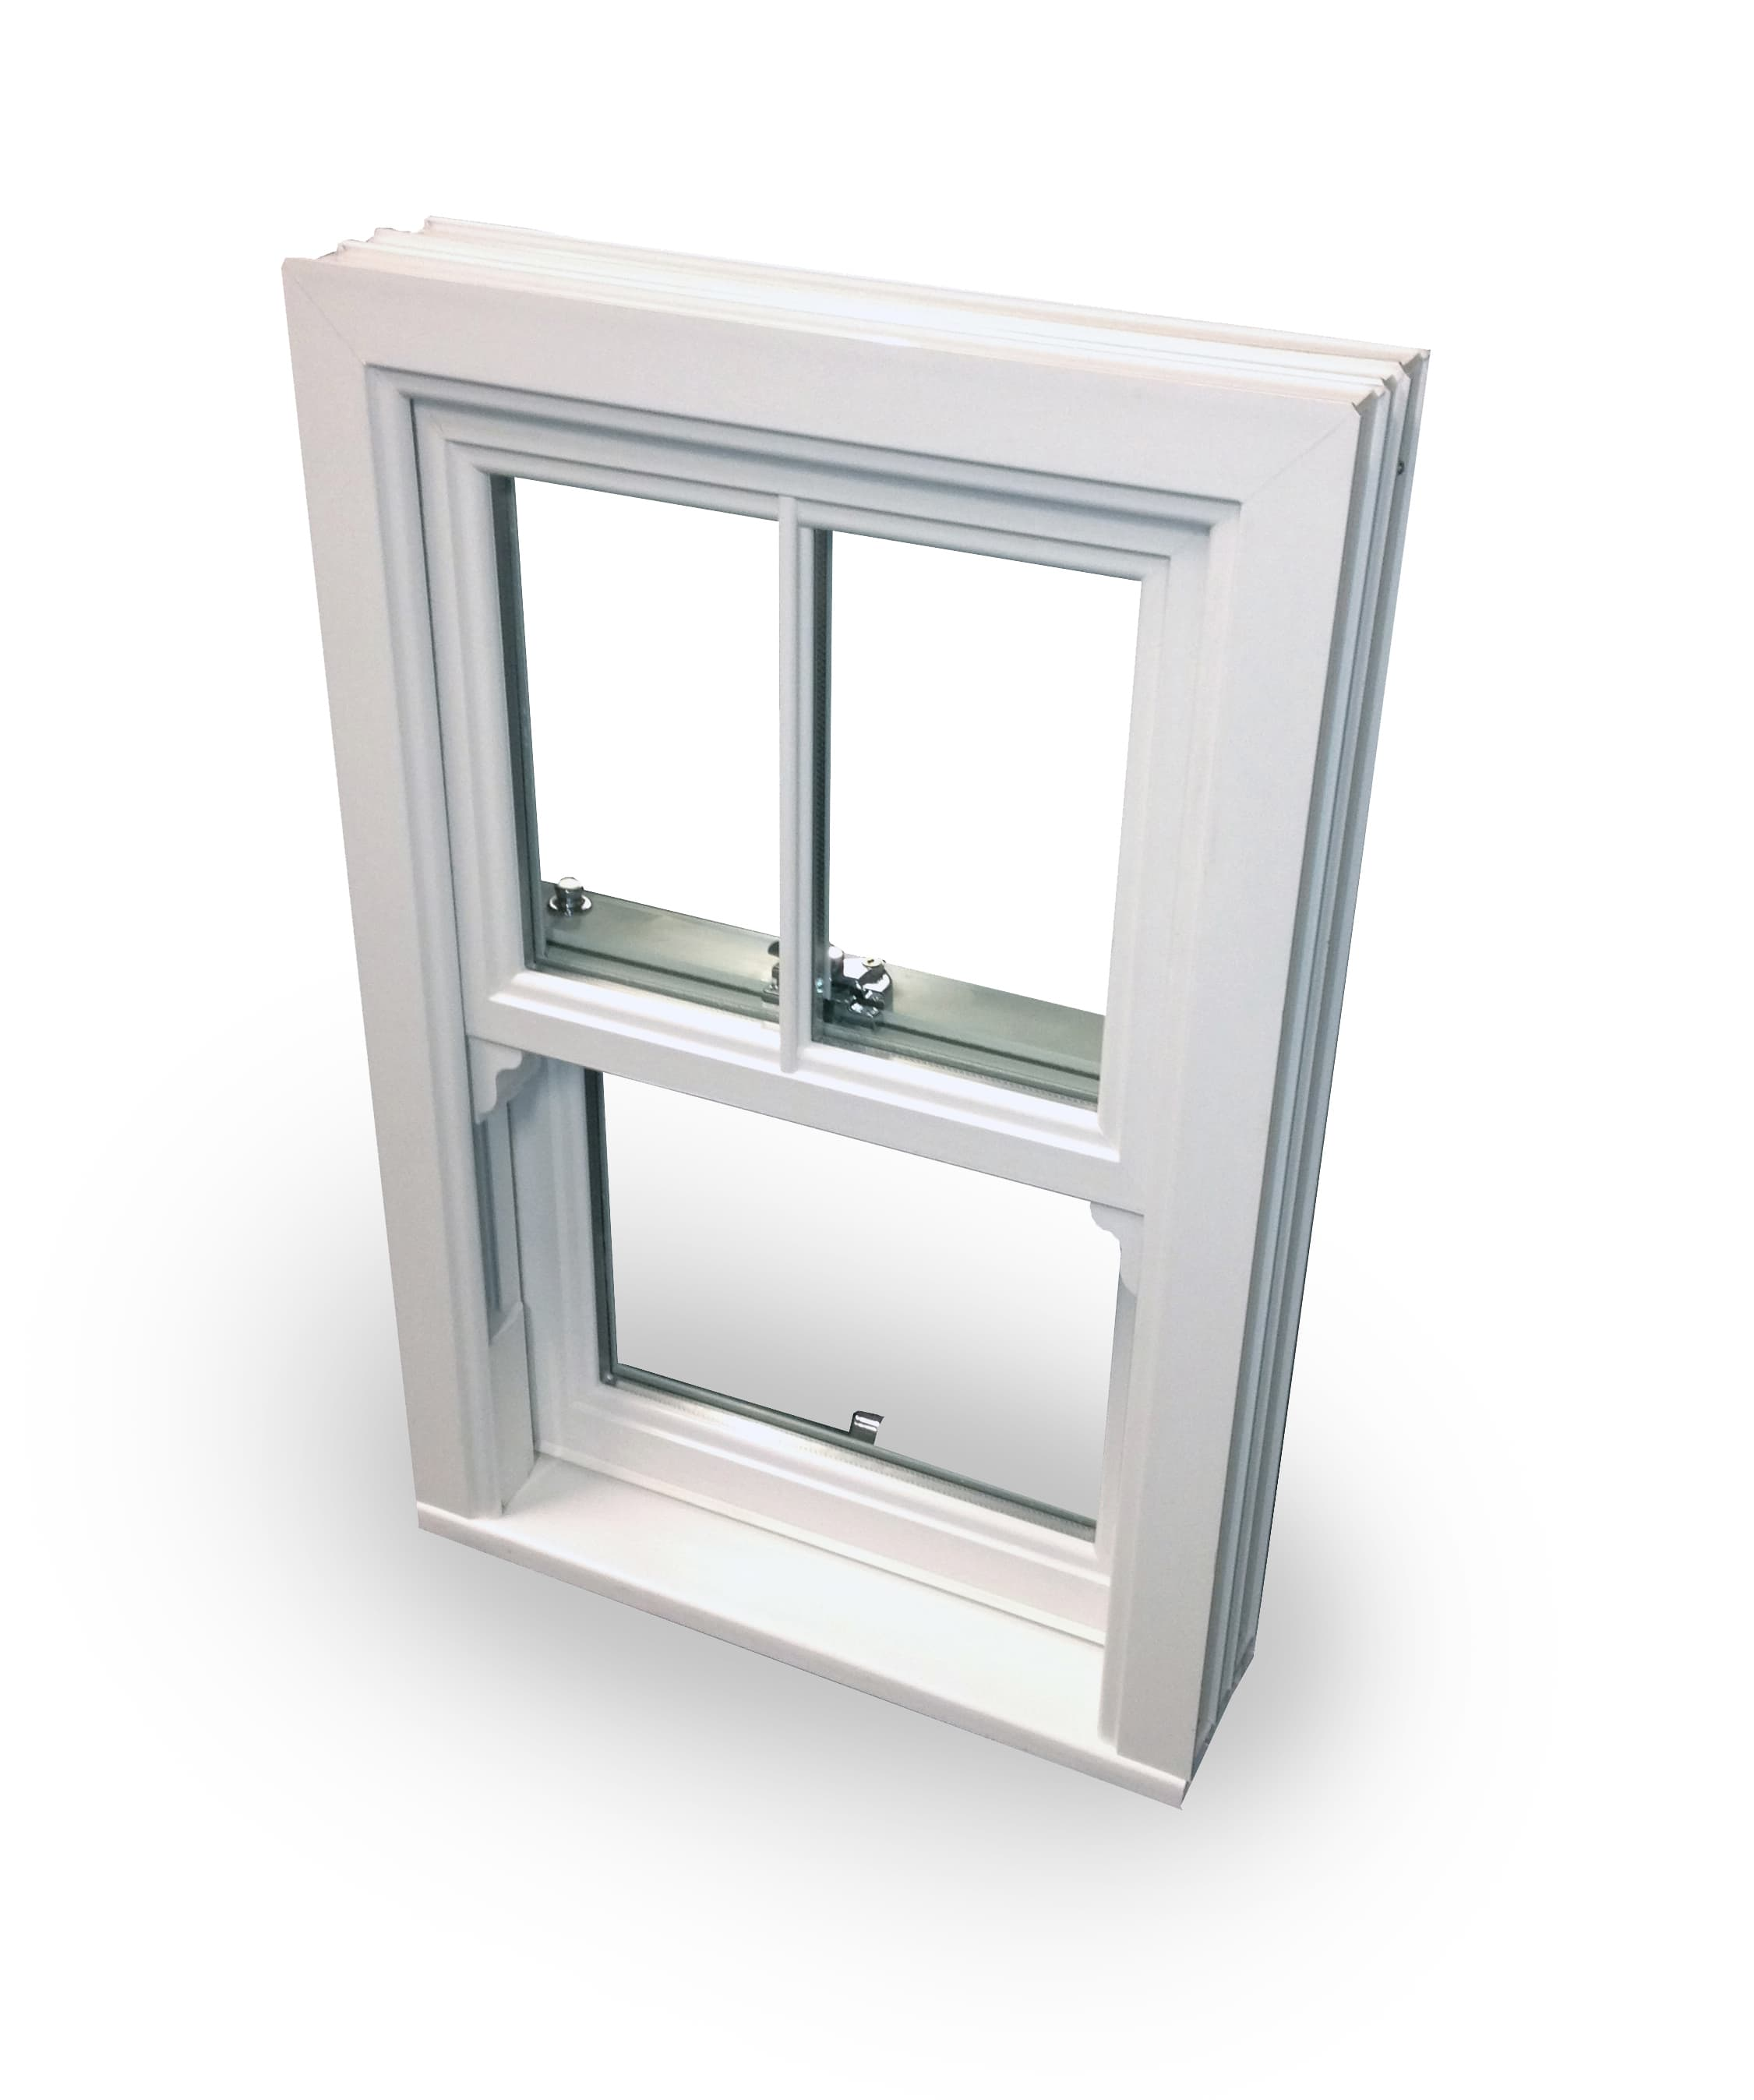 Double Glazed Windows : Double glazed windows maidstone kent upvc